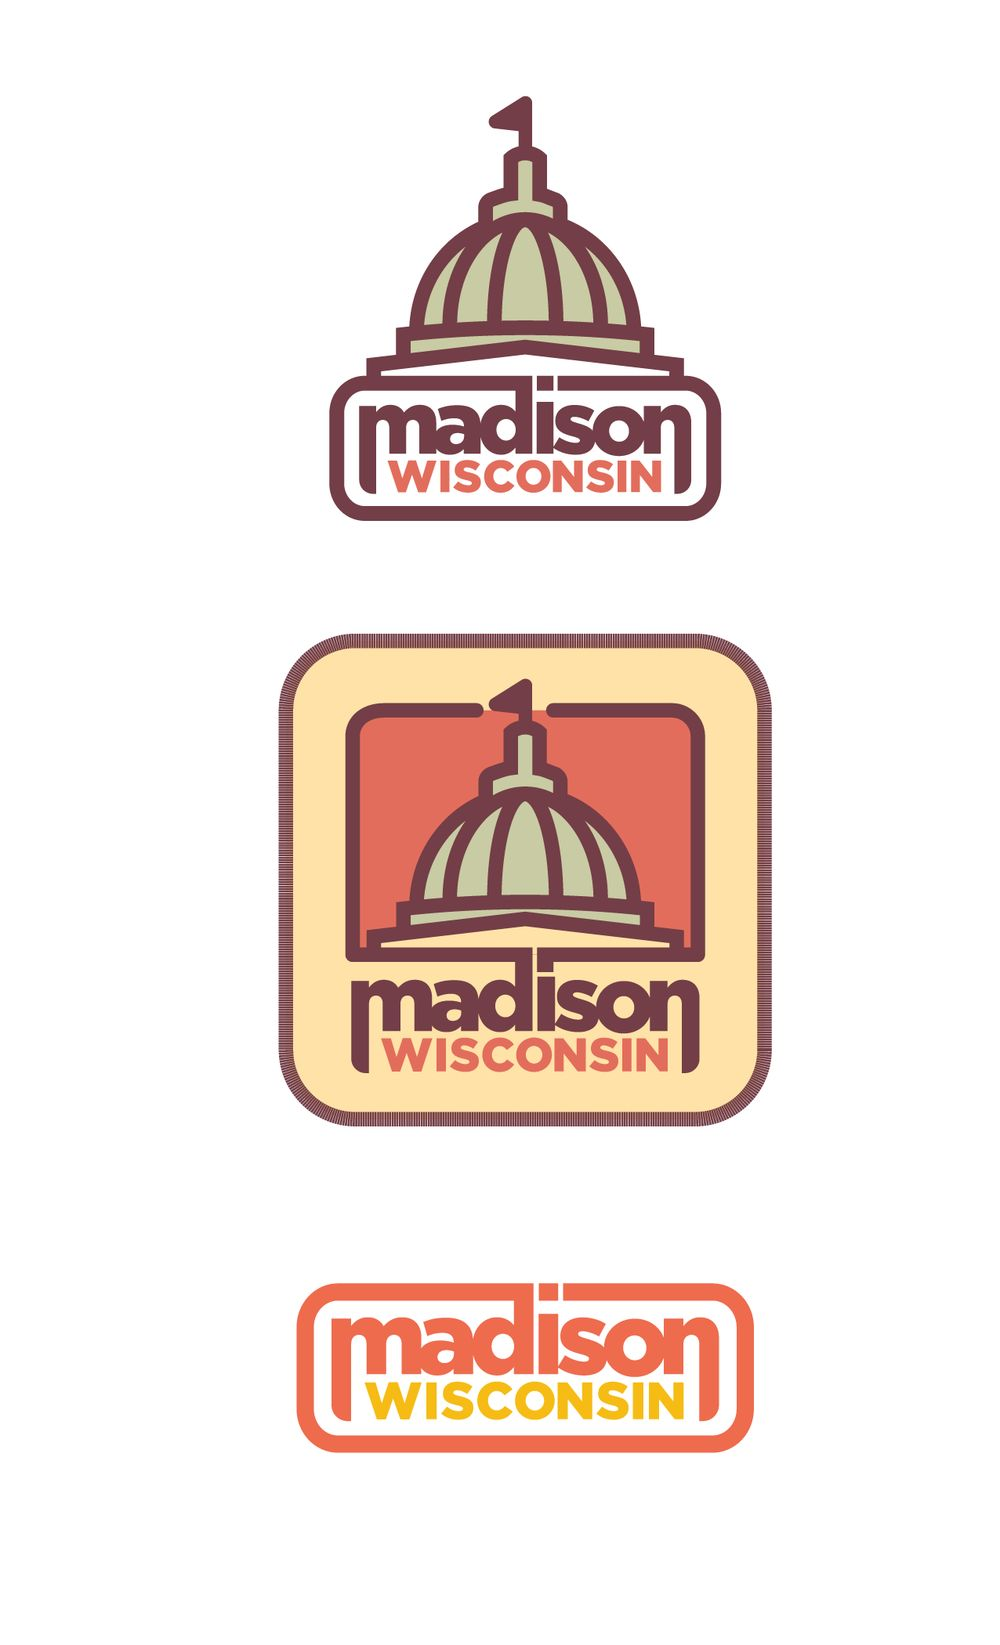 Madison, WI - image 3 - student project